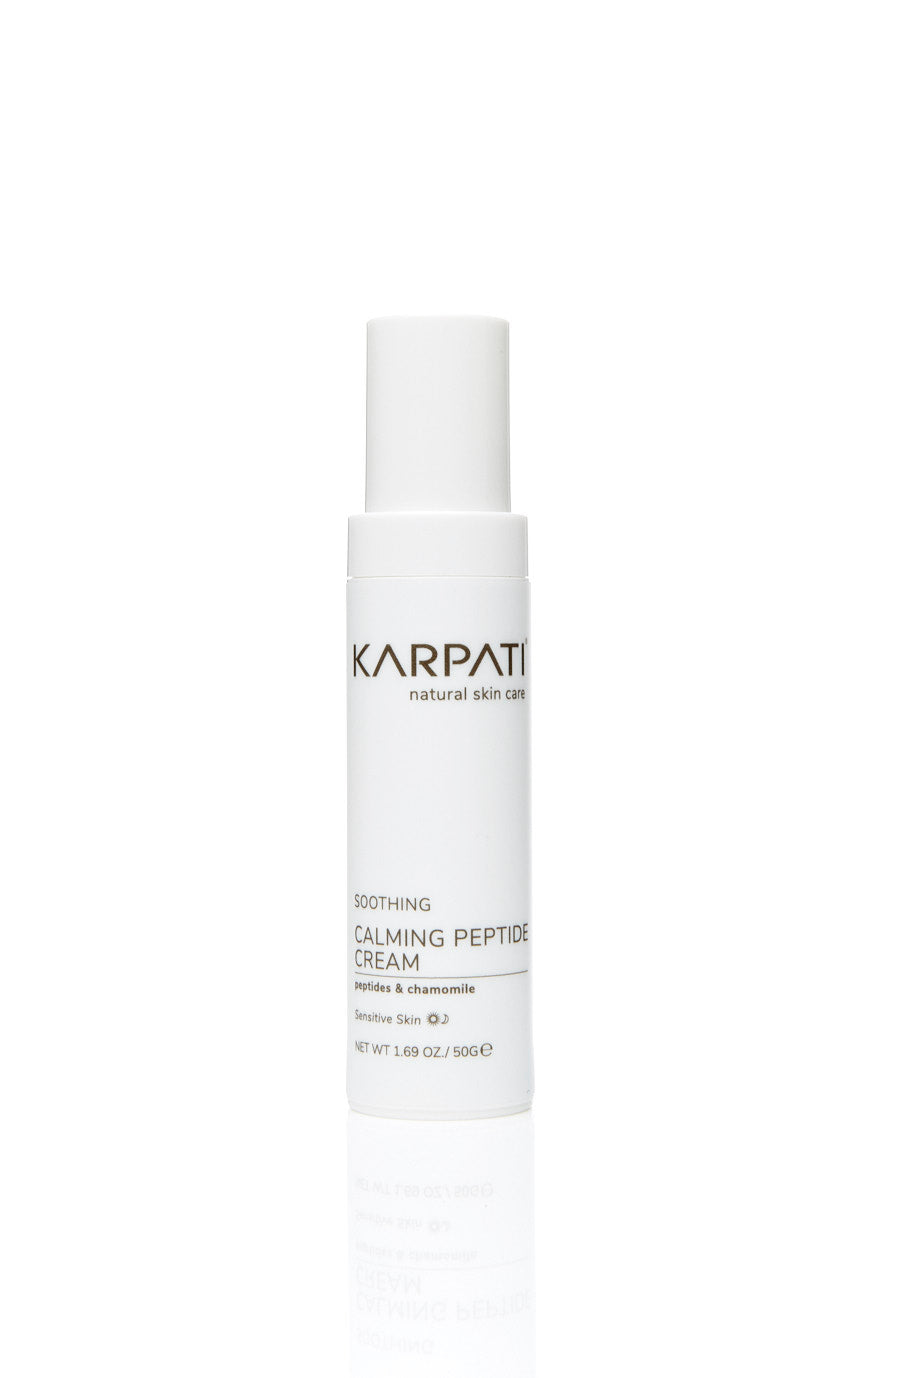 Soothing Calming Peptide Cream